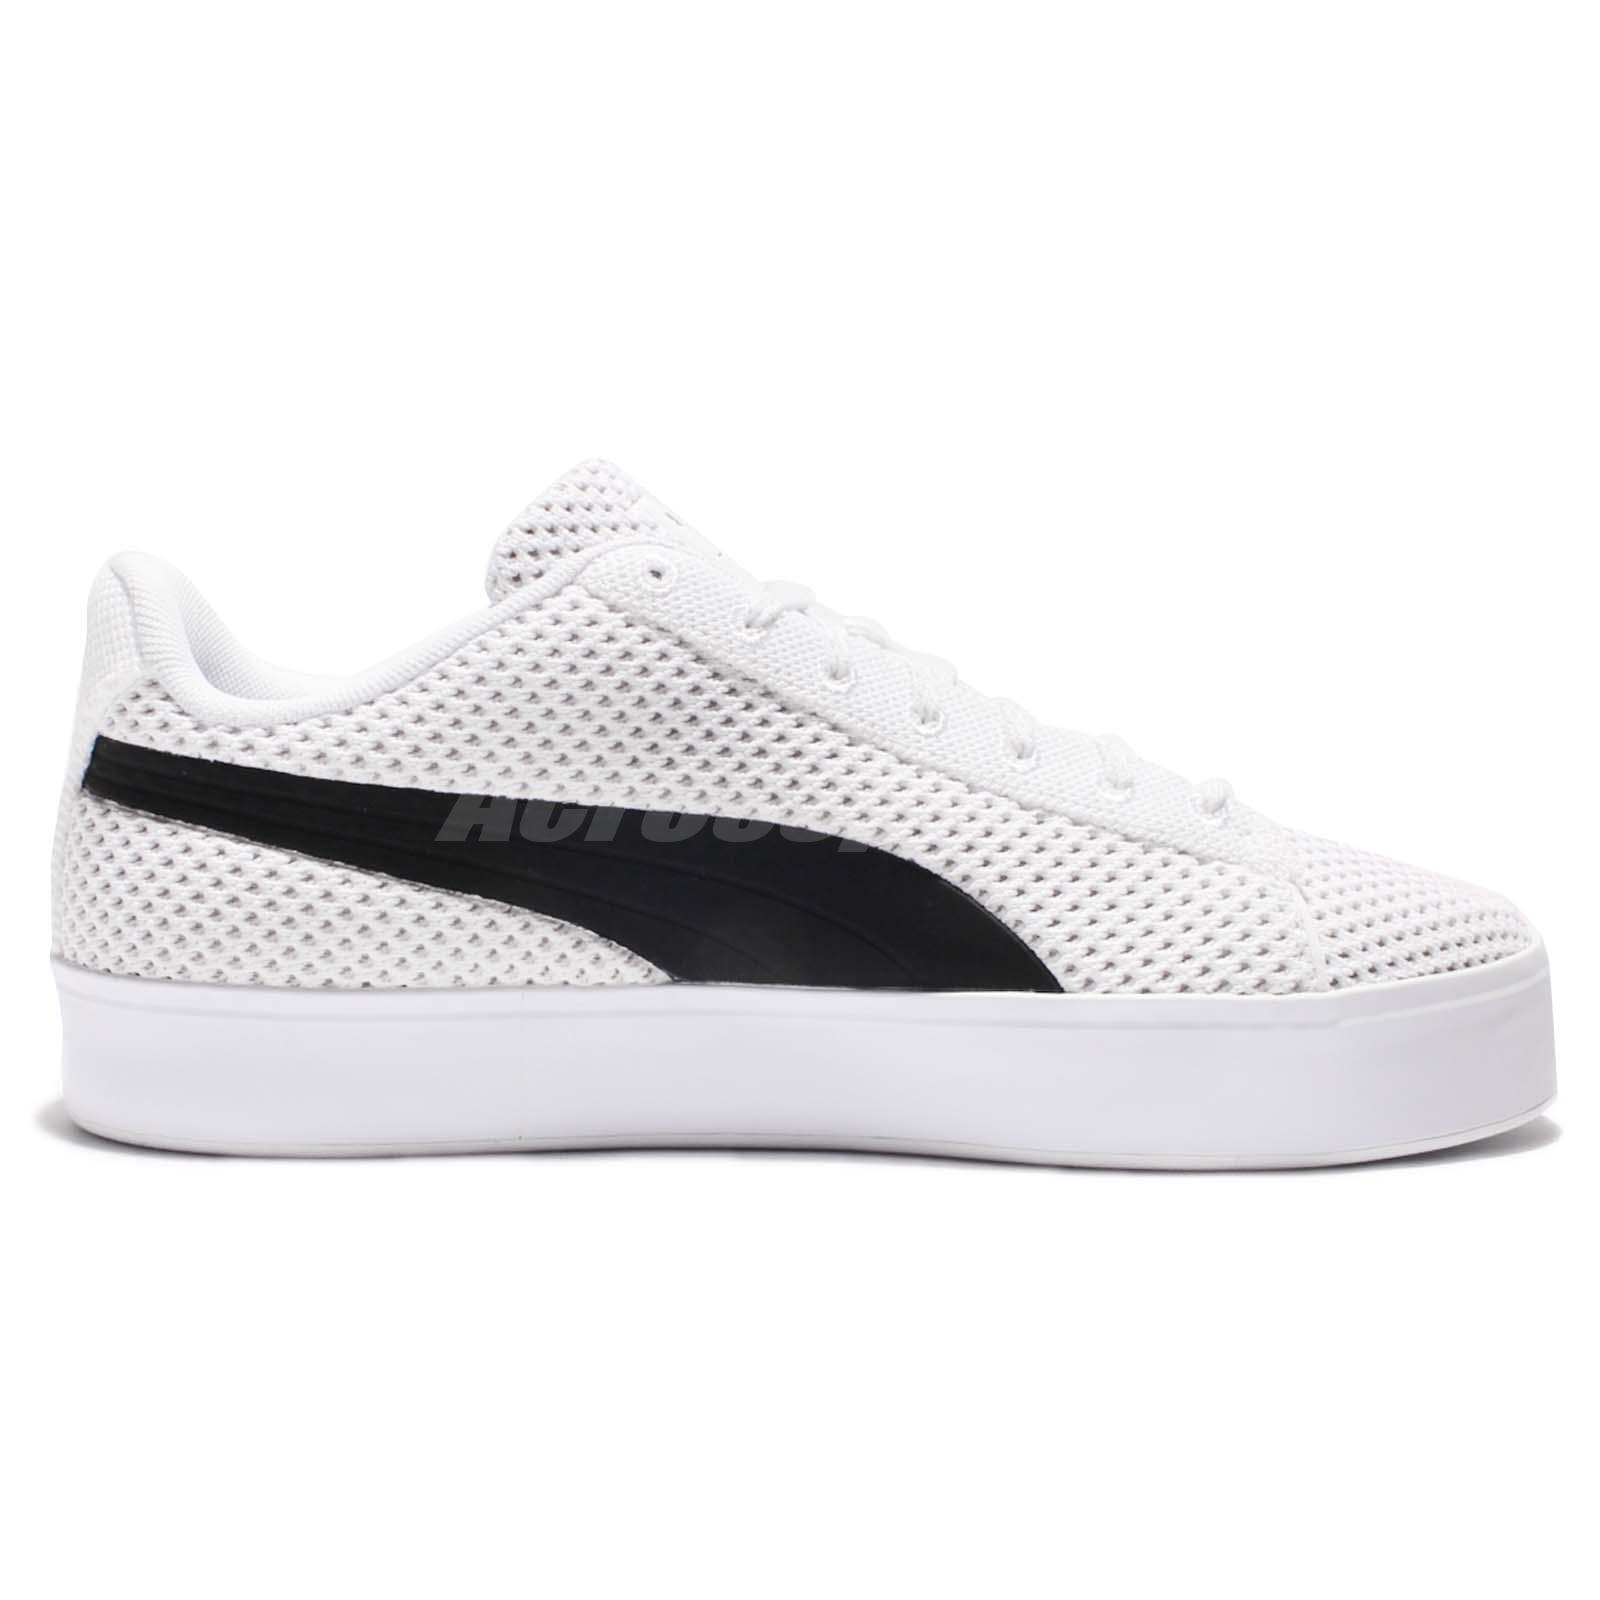 80059fa7bd9 Puma X DP Court Platform K Daily Paper White Black Men Casual Shoes ...